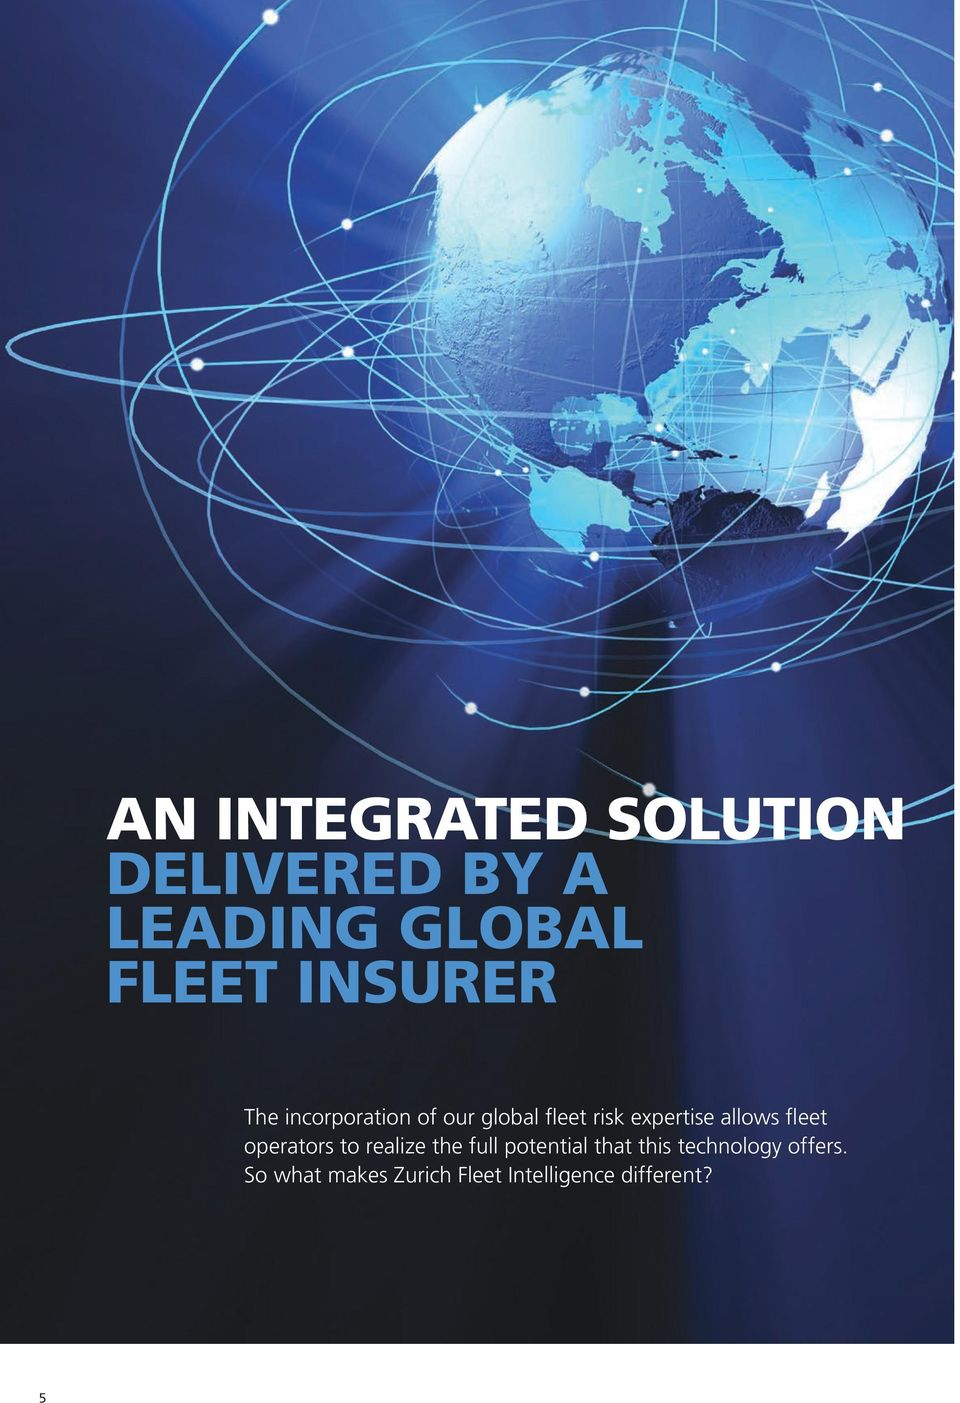 allows fleet operators to realize the full potential that this